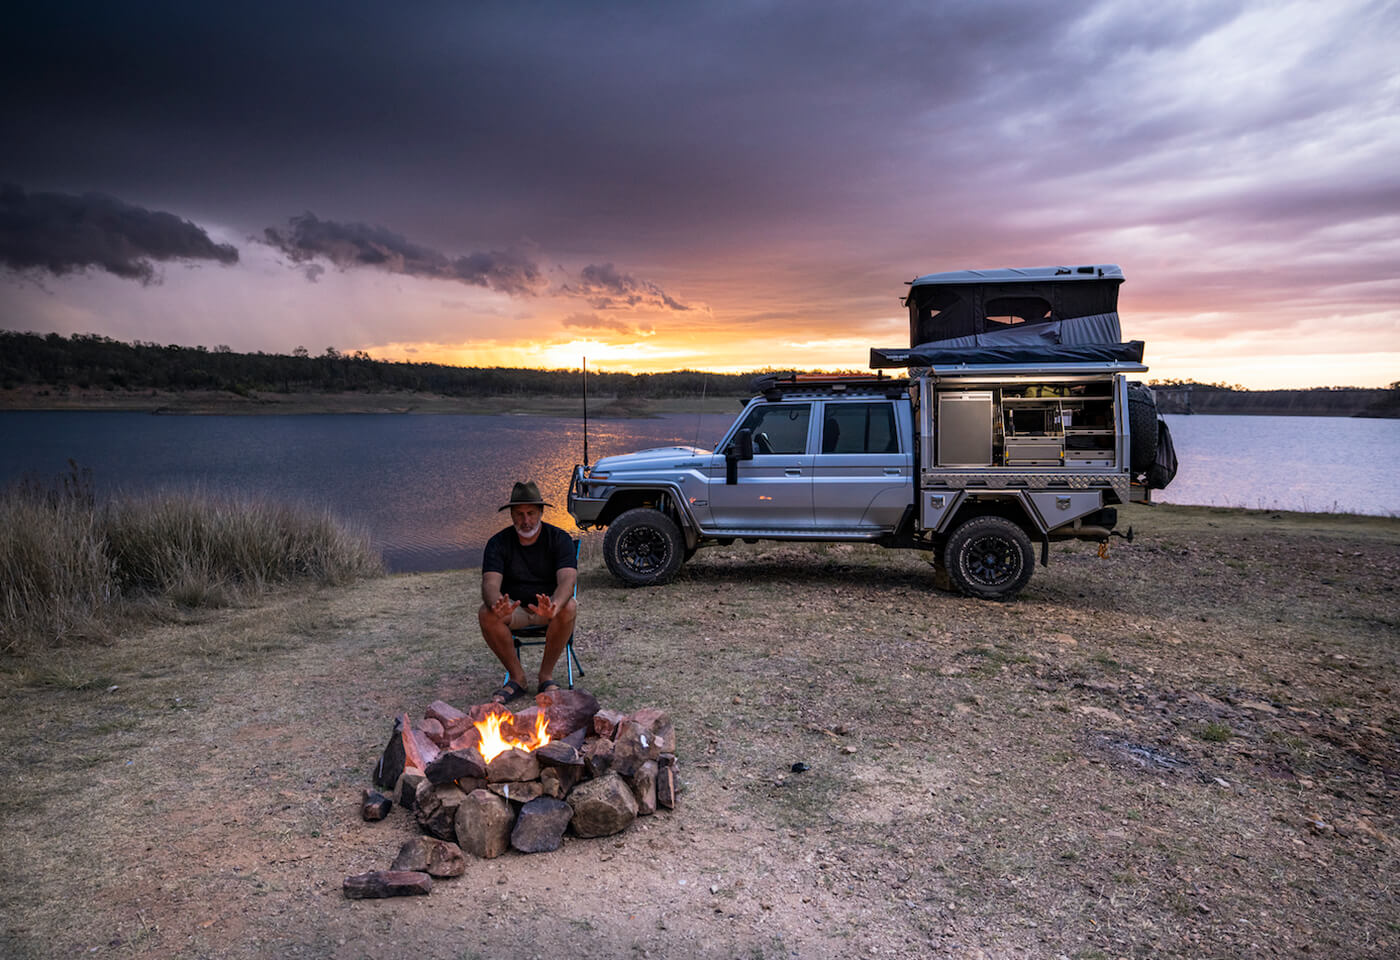 Image of man with a hat warming hands by fire in front of a 4WD.